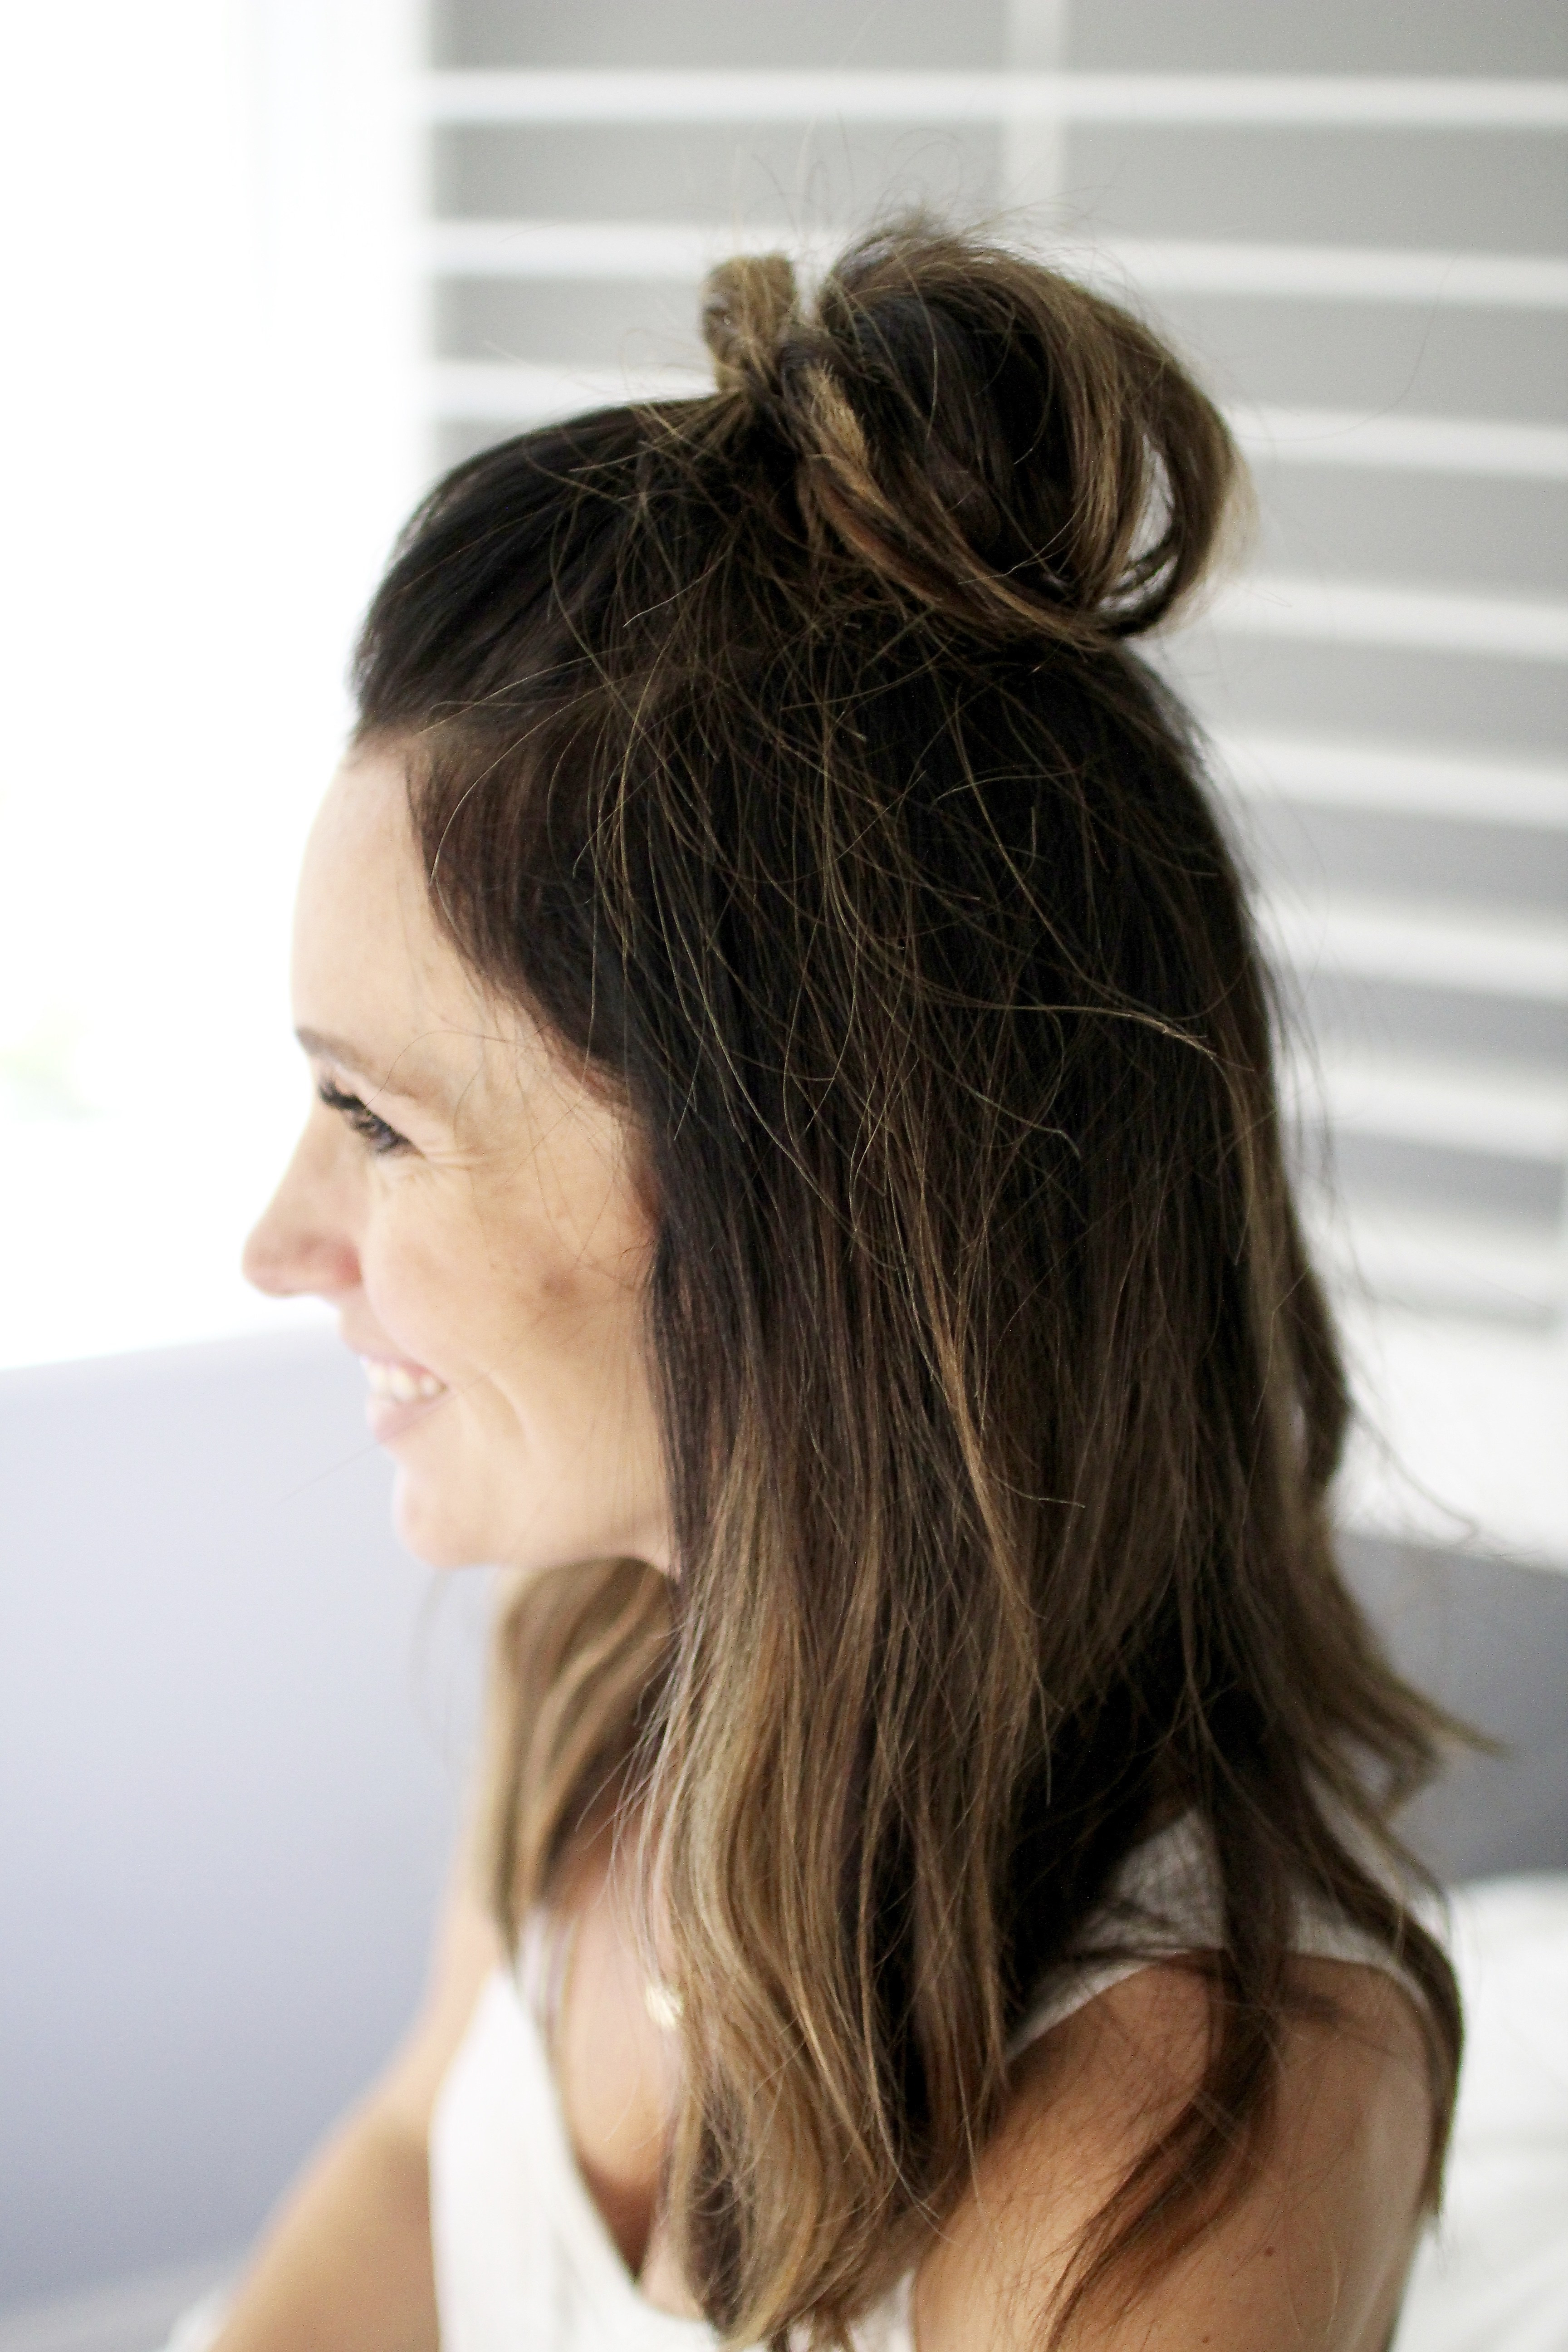 Best ideas about Easy Hairstyles For Dirty Hair . Save or Pin 3 Easy Hair Styles For Those Dirty Hair Days Now.